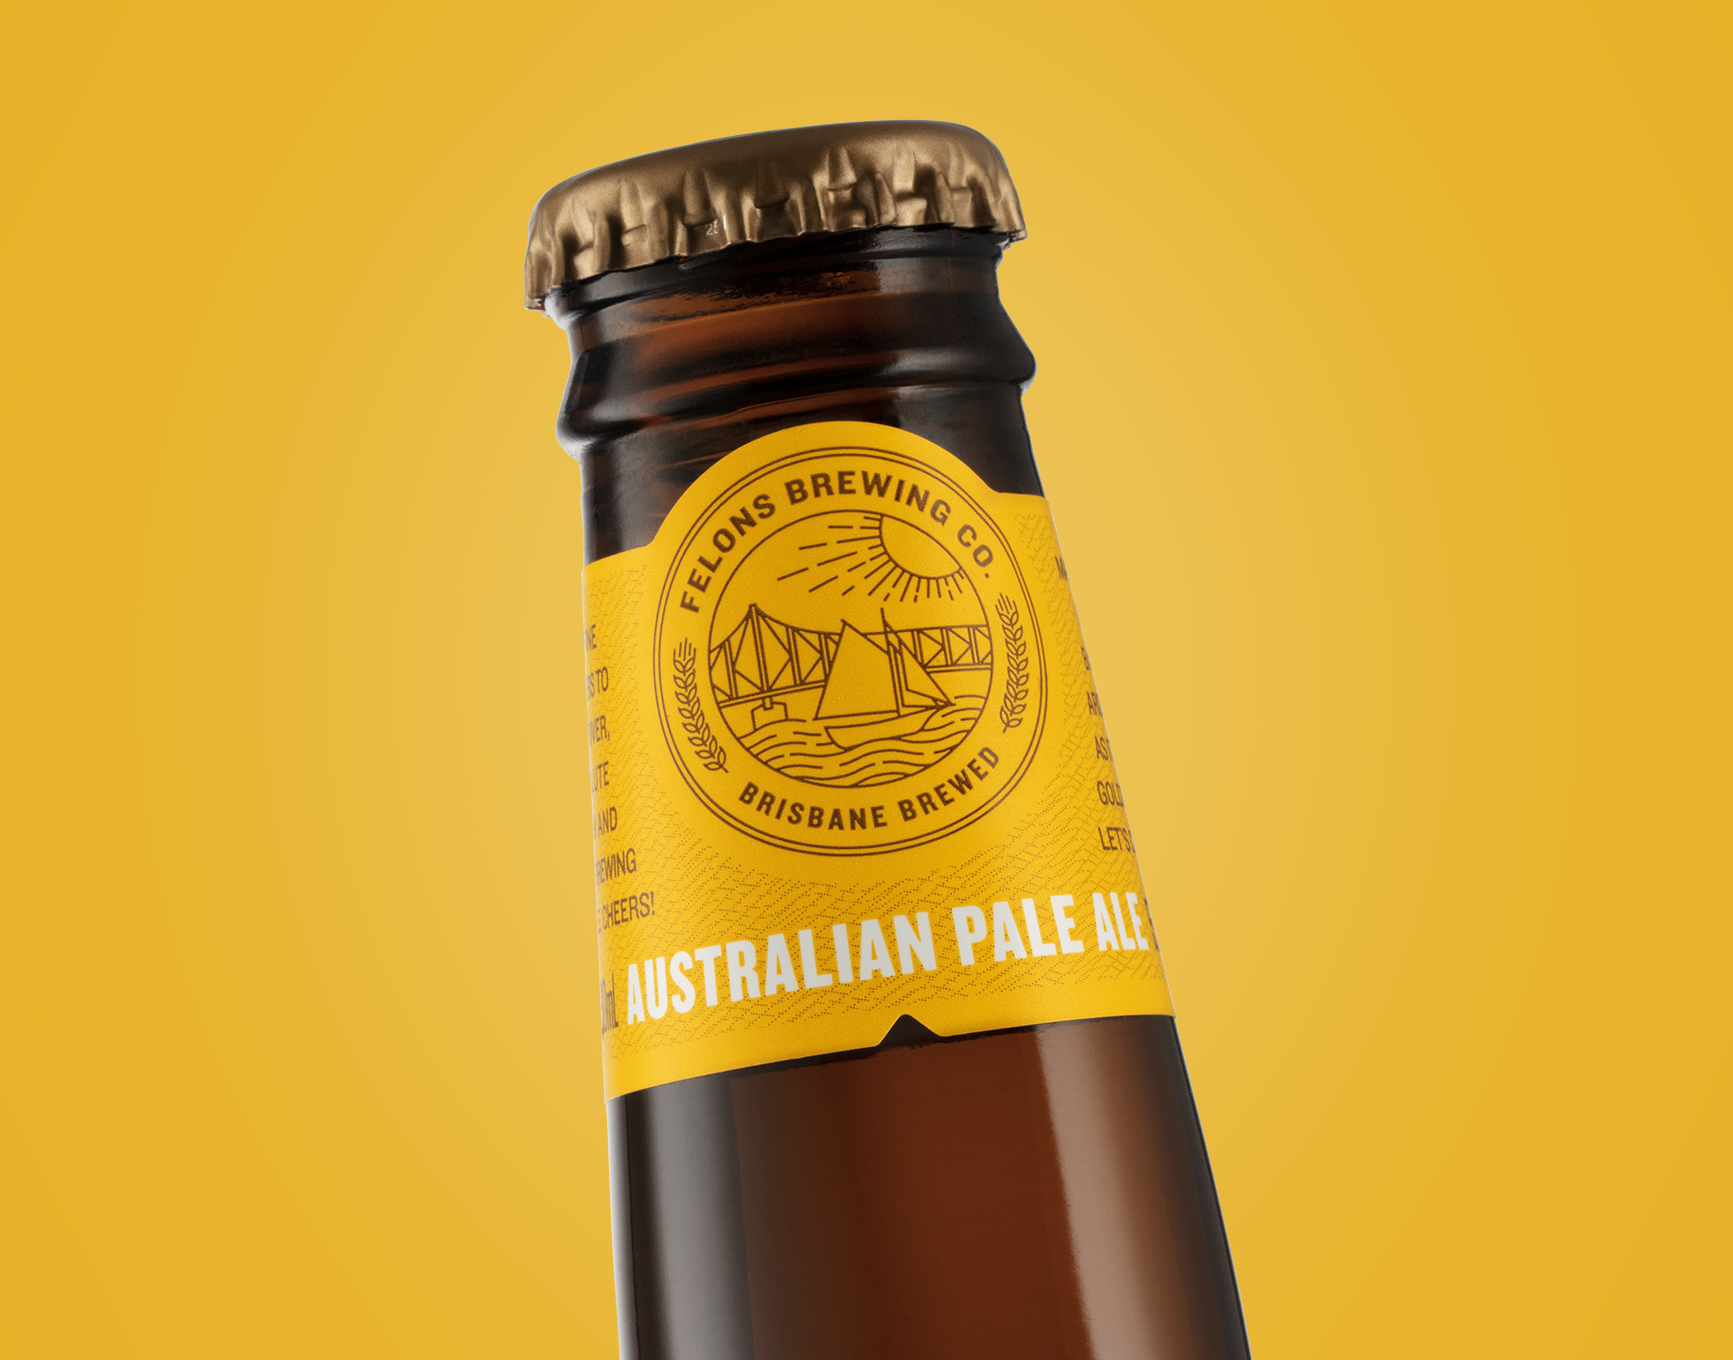 Risbane Brewed Under The Story Bridge / World Brand and Packaging Design Society